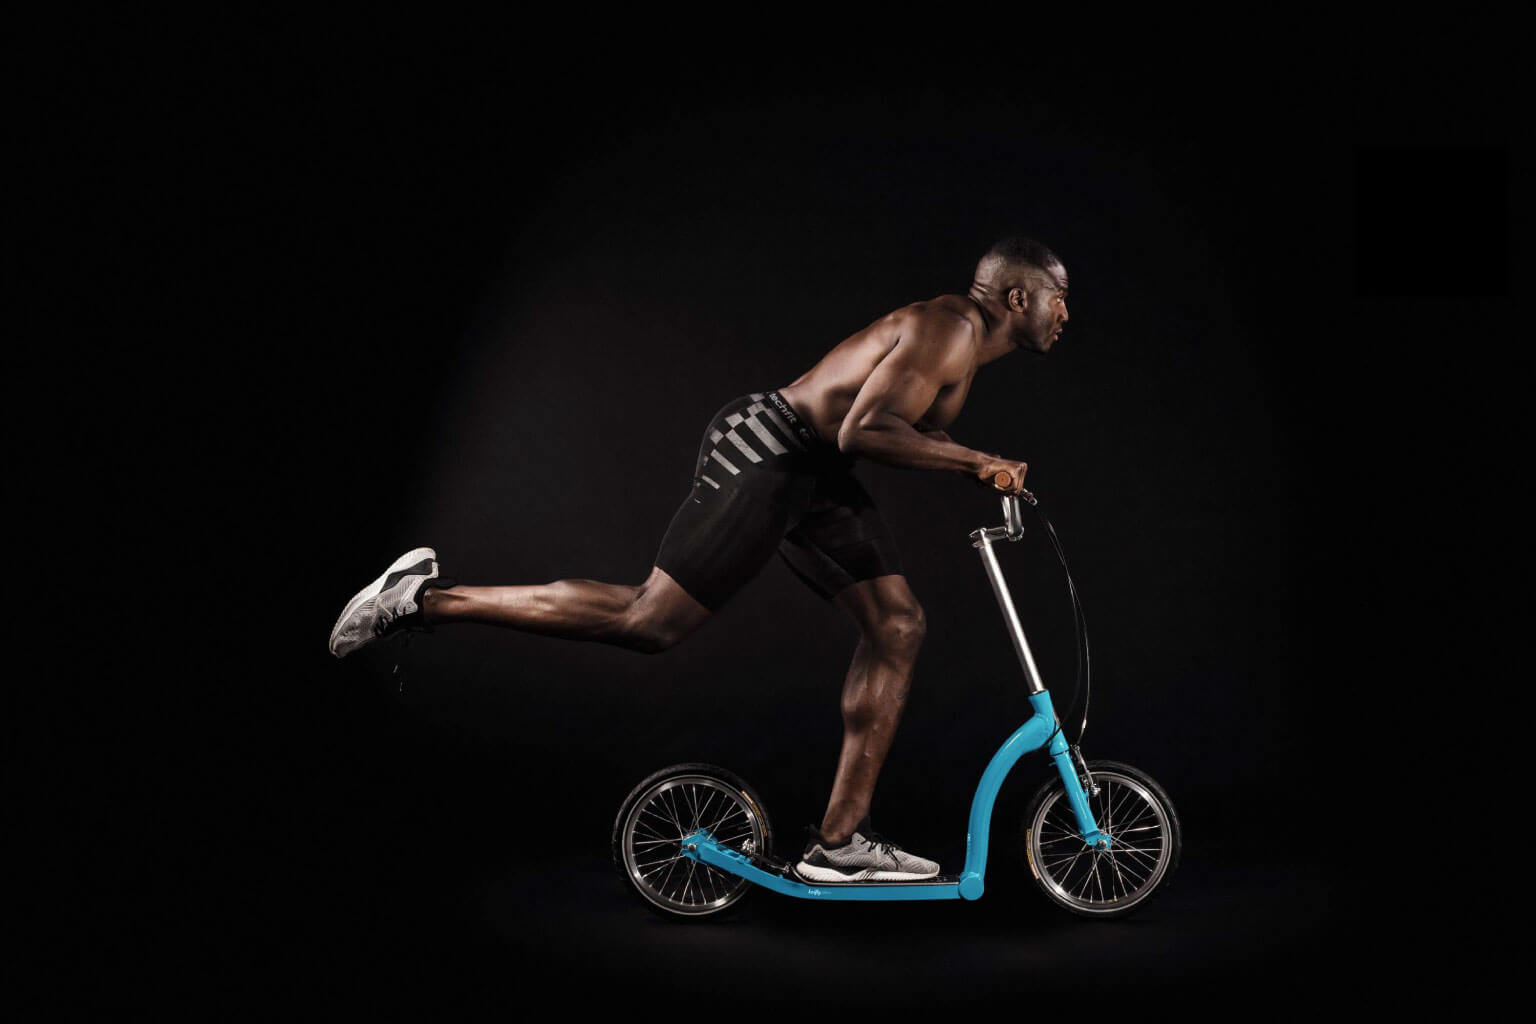 fitness adult scooter, exercise kick scooter